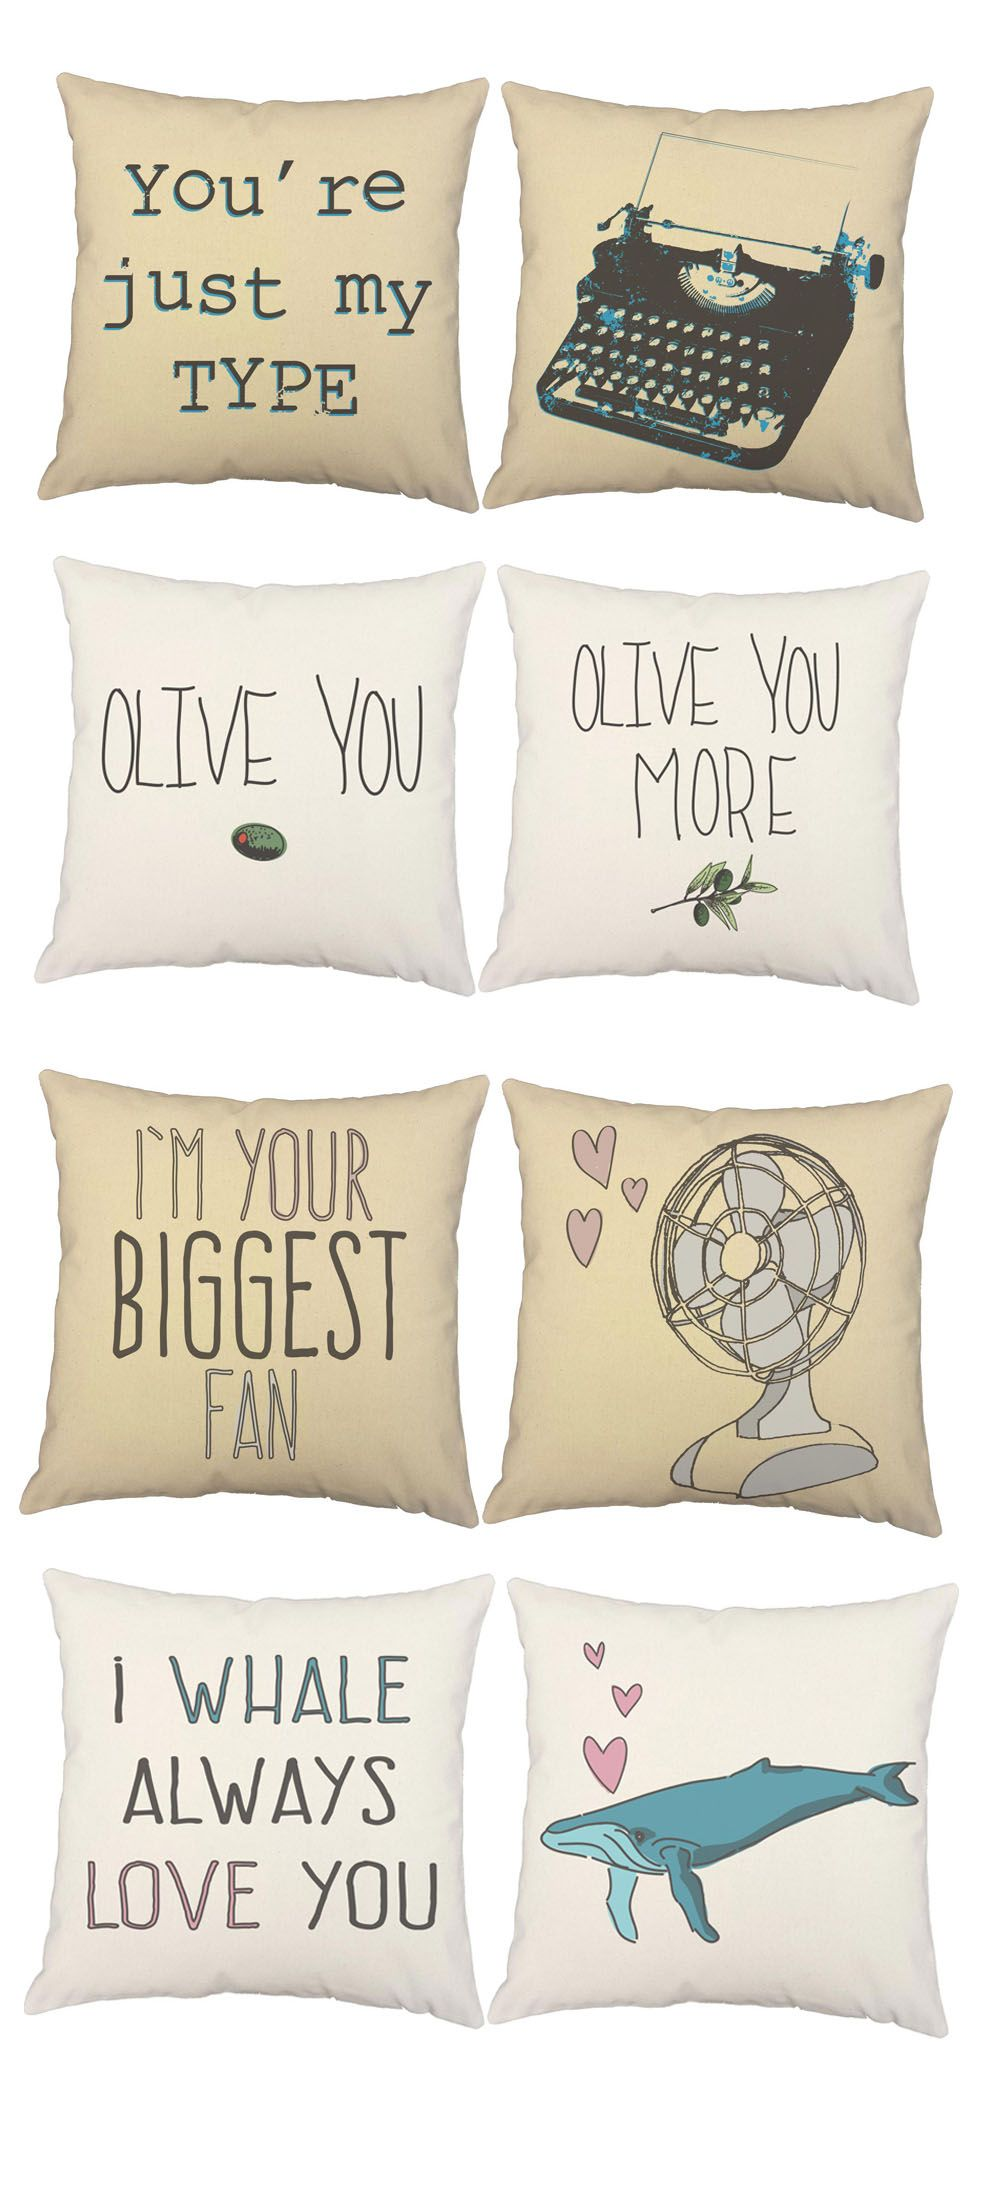 King and Queen Couples Pillow Cases,His Hers Pillowcases,Romantic Gifts, Funny Gift